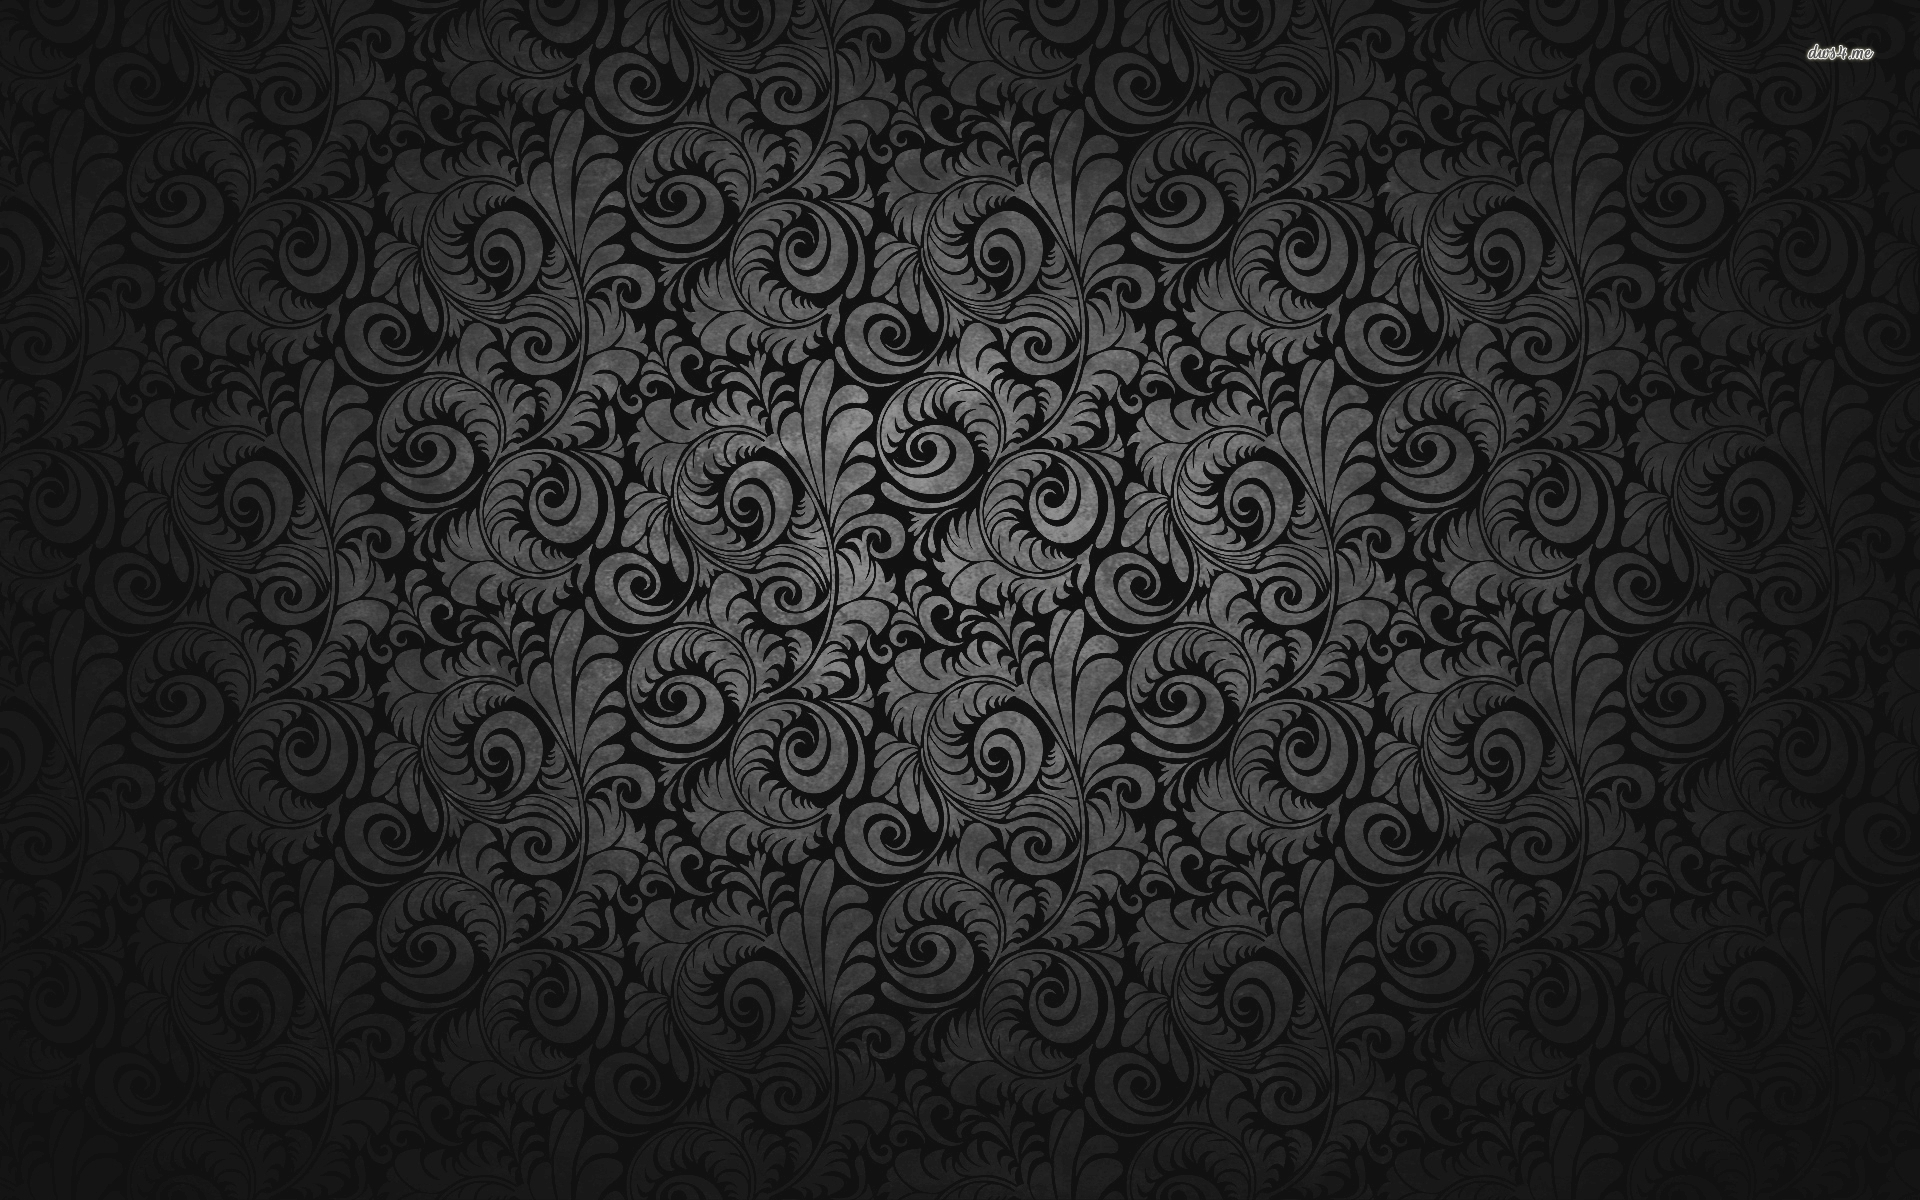 6996 Floral Pattern 1920x1200 Abstract Wallpaper Jpg Photography